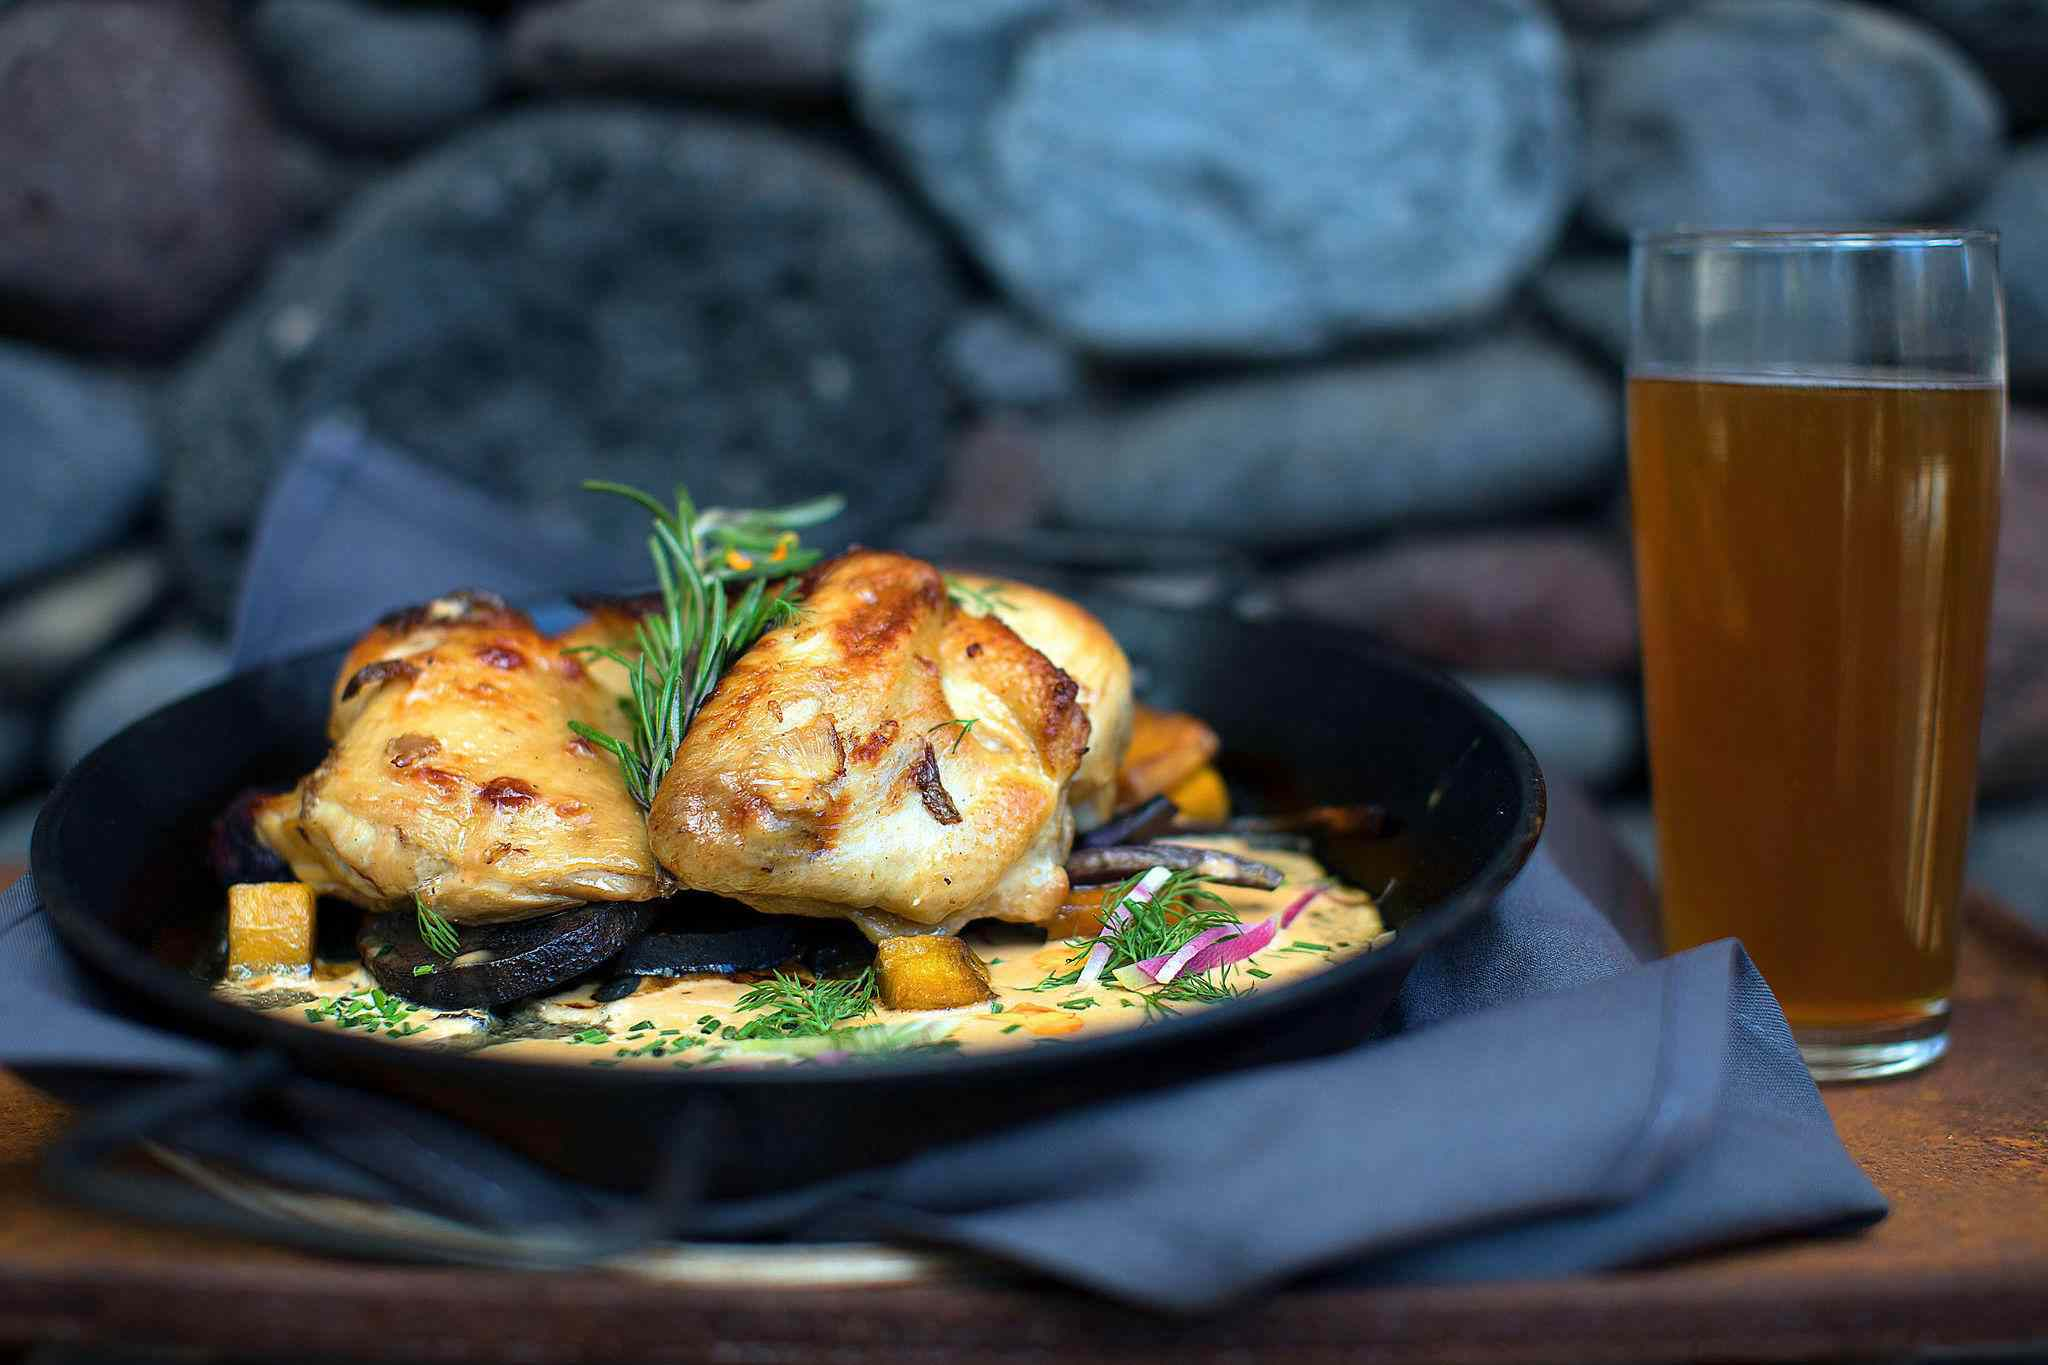 Roasted half-chicken with a dijon glaze garnished with rosemary on a black plate with a glass of beer